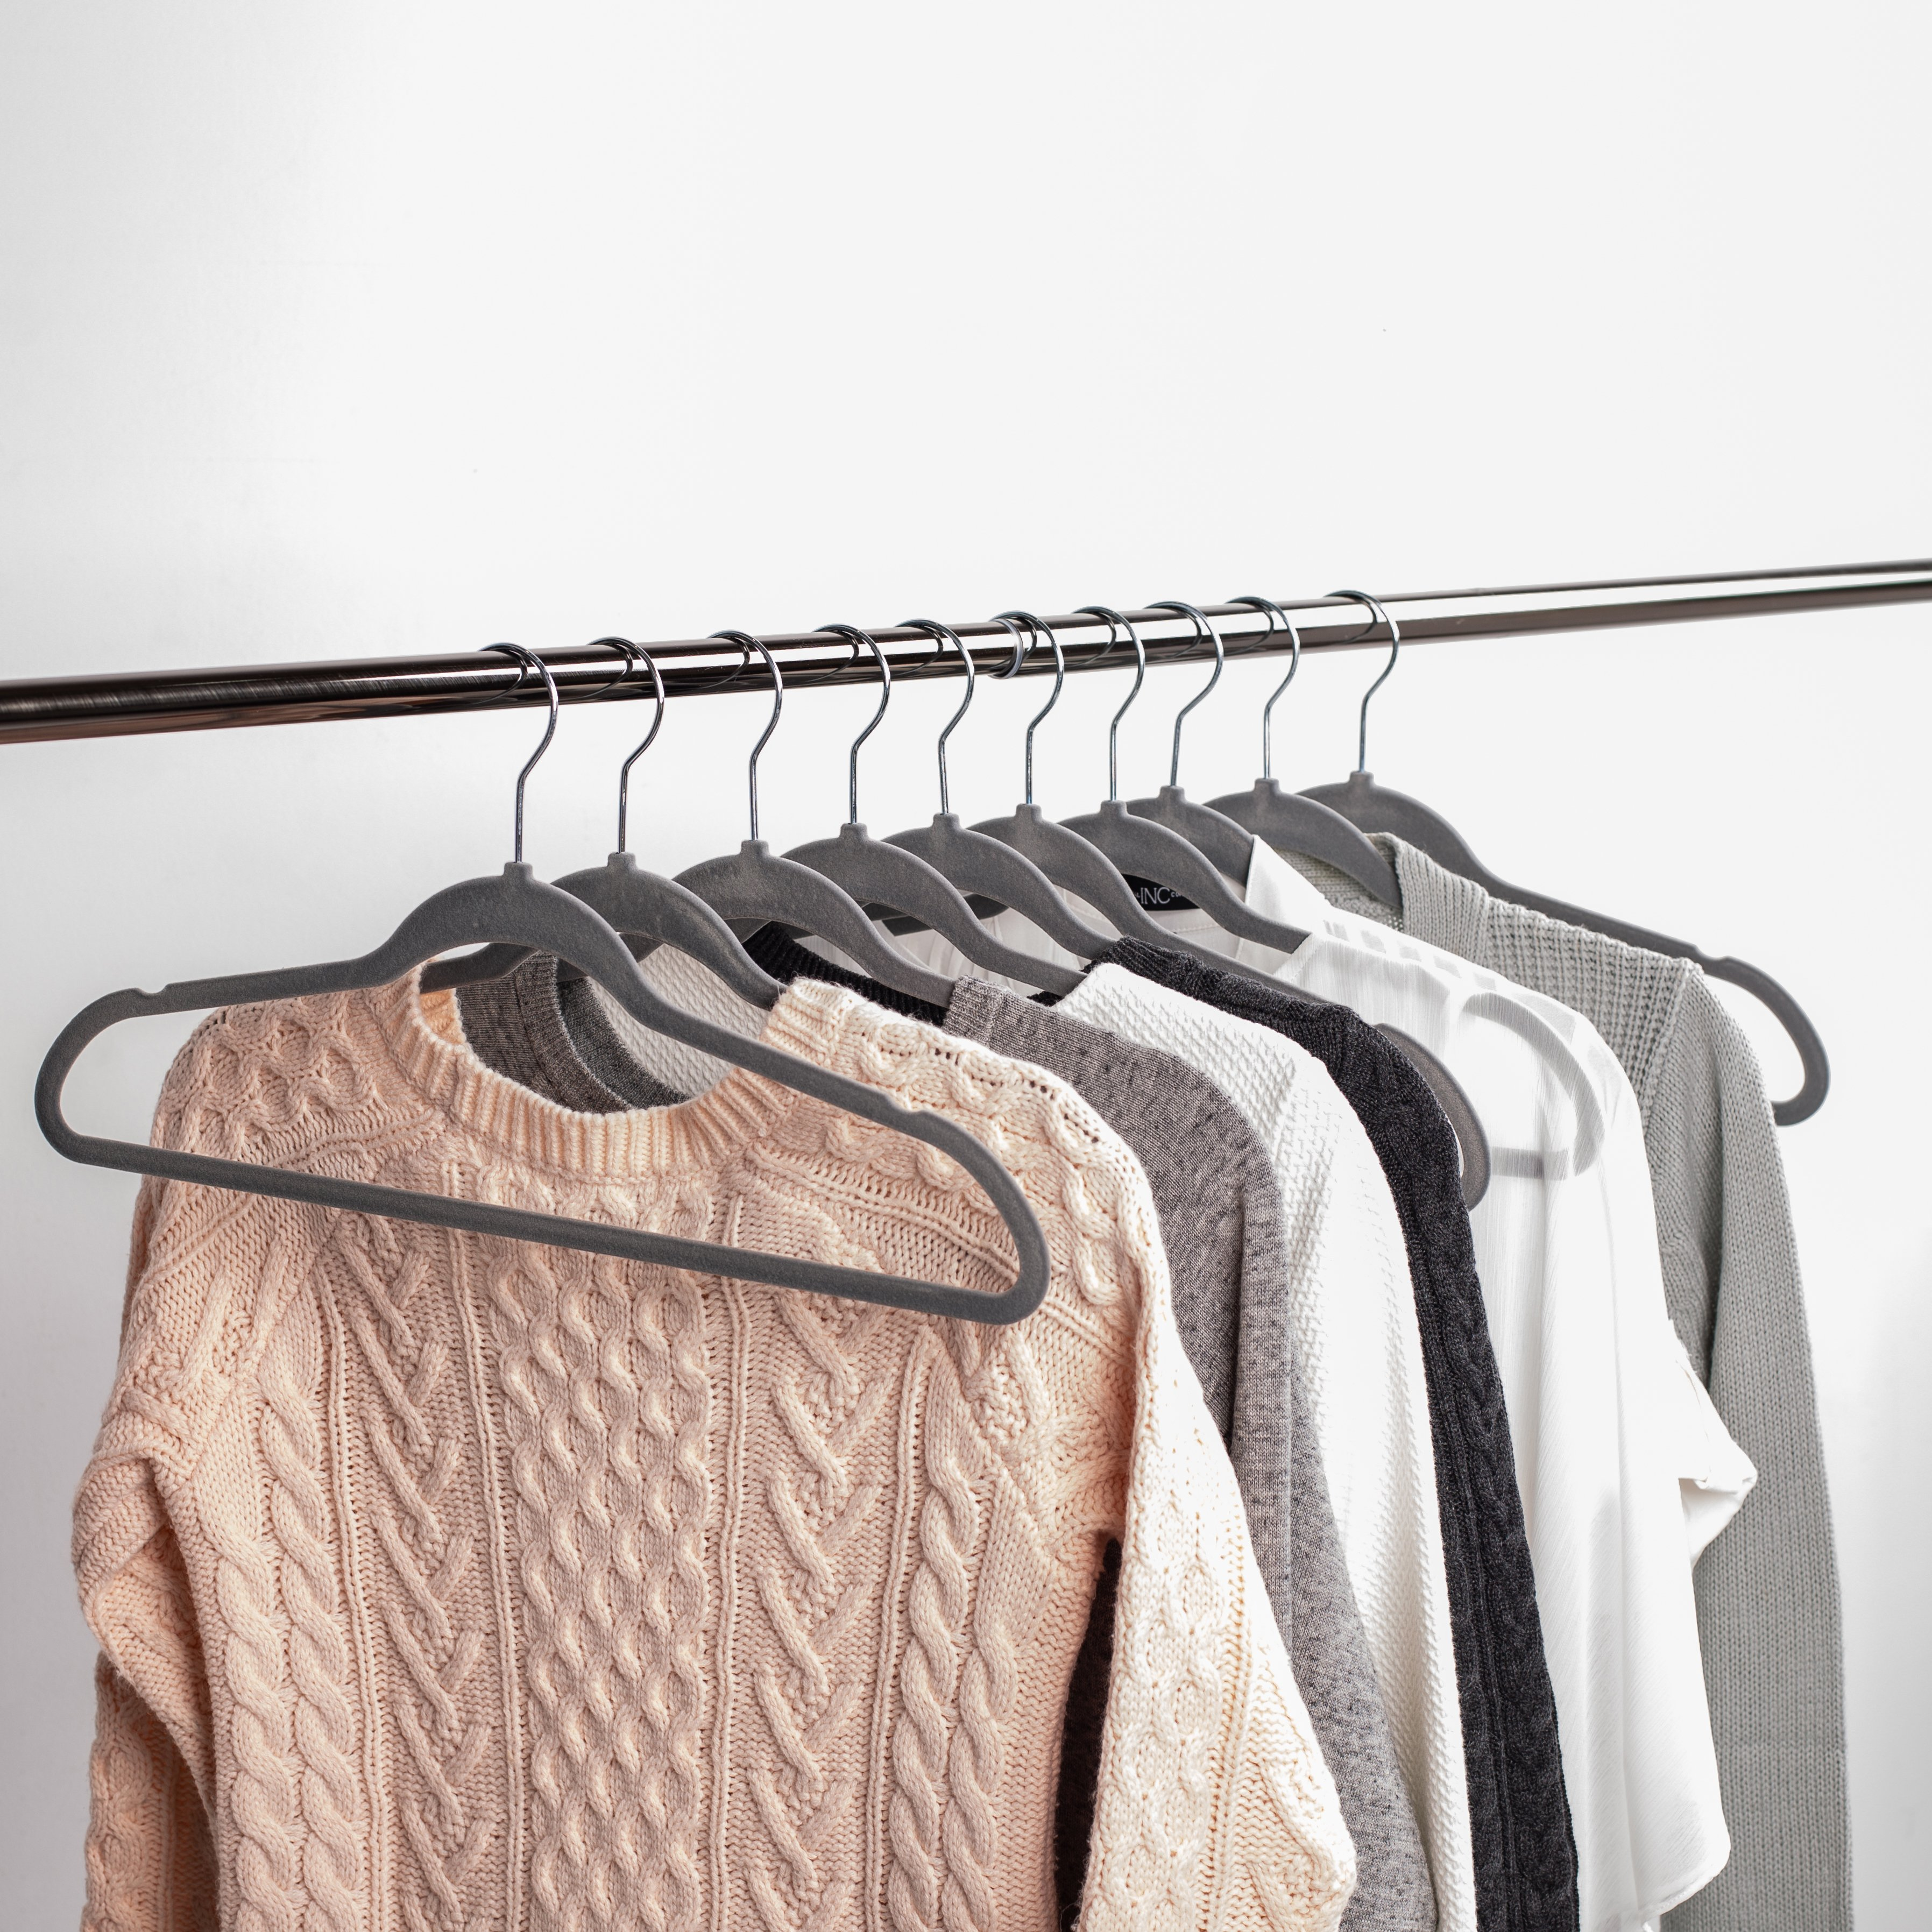 grey velvet hangers with clothes